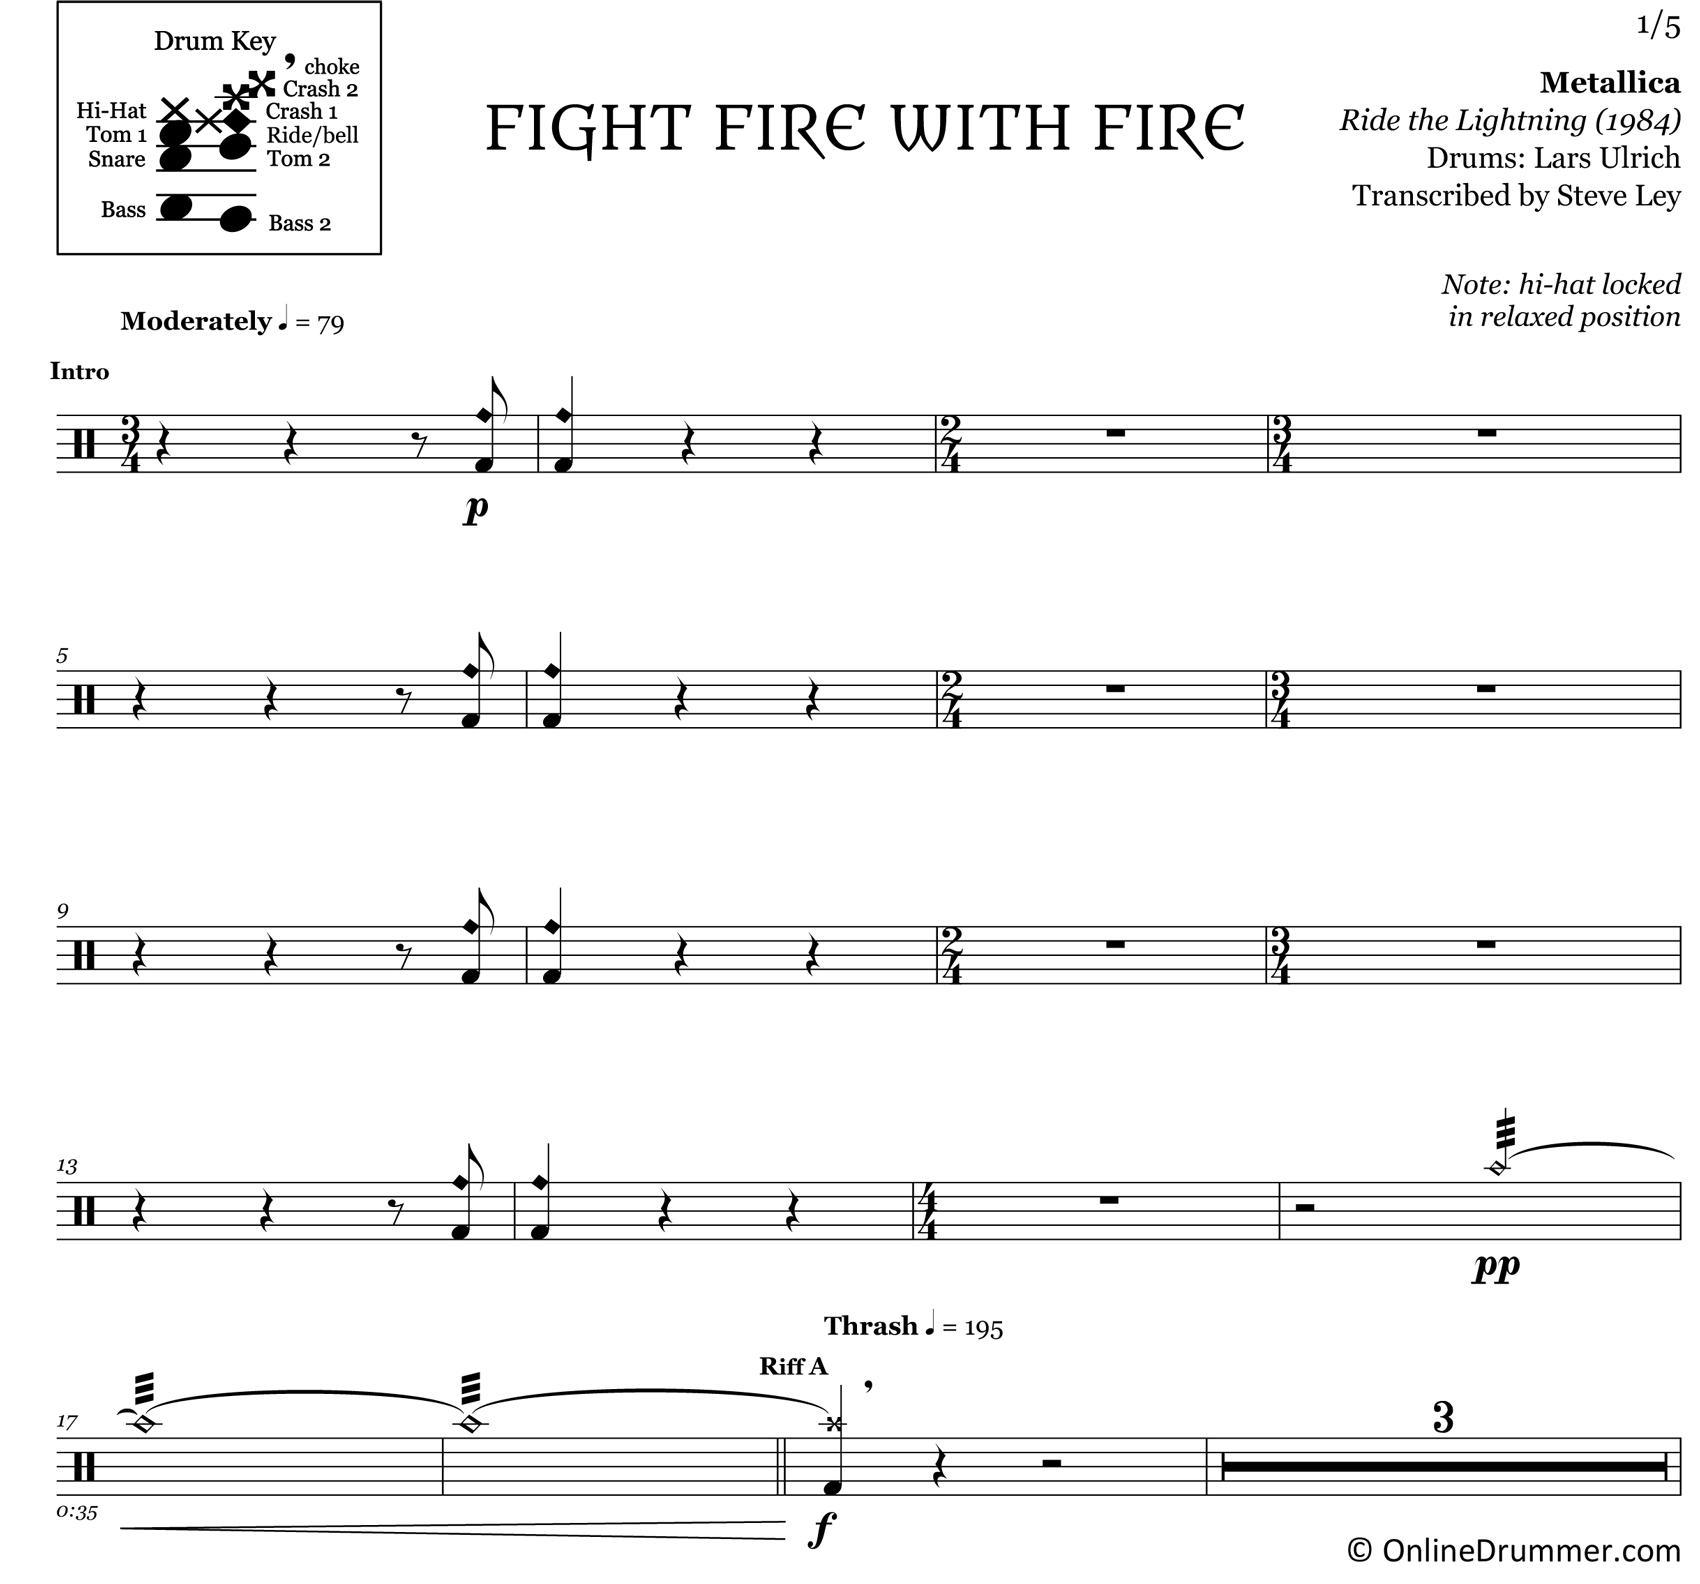 Fight Fire with Fire - Metallica - Drum Sheet Music